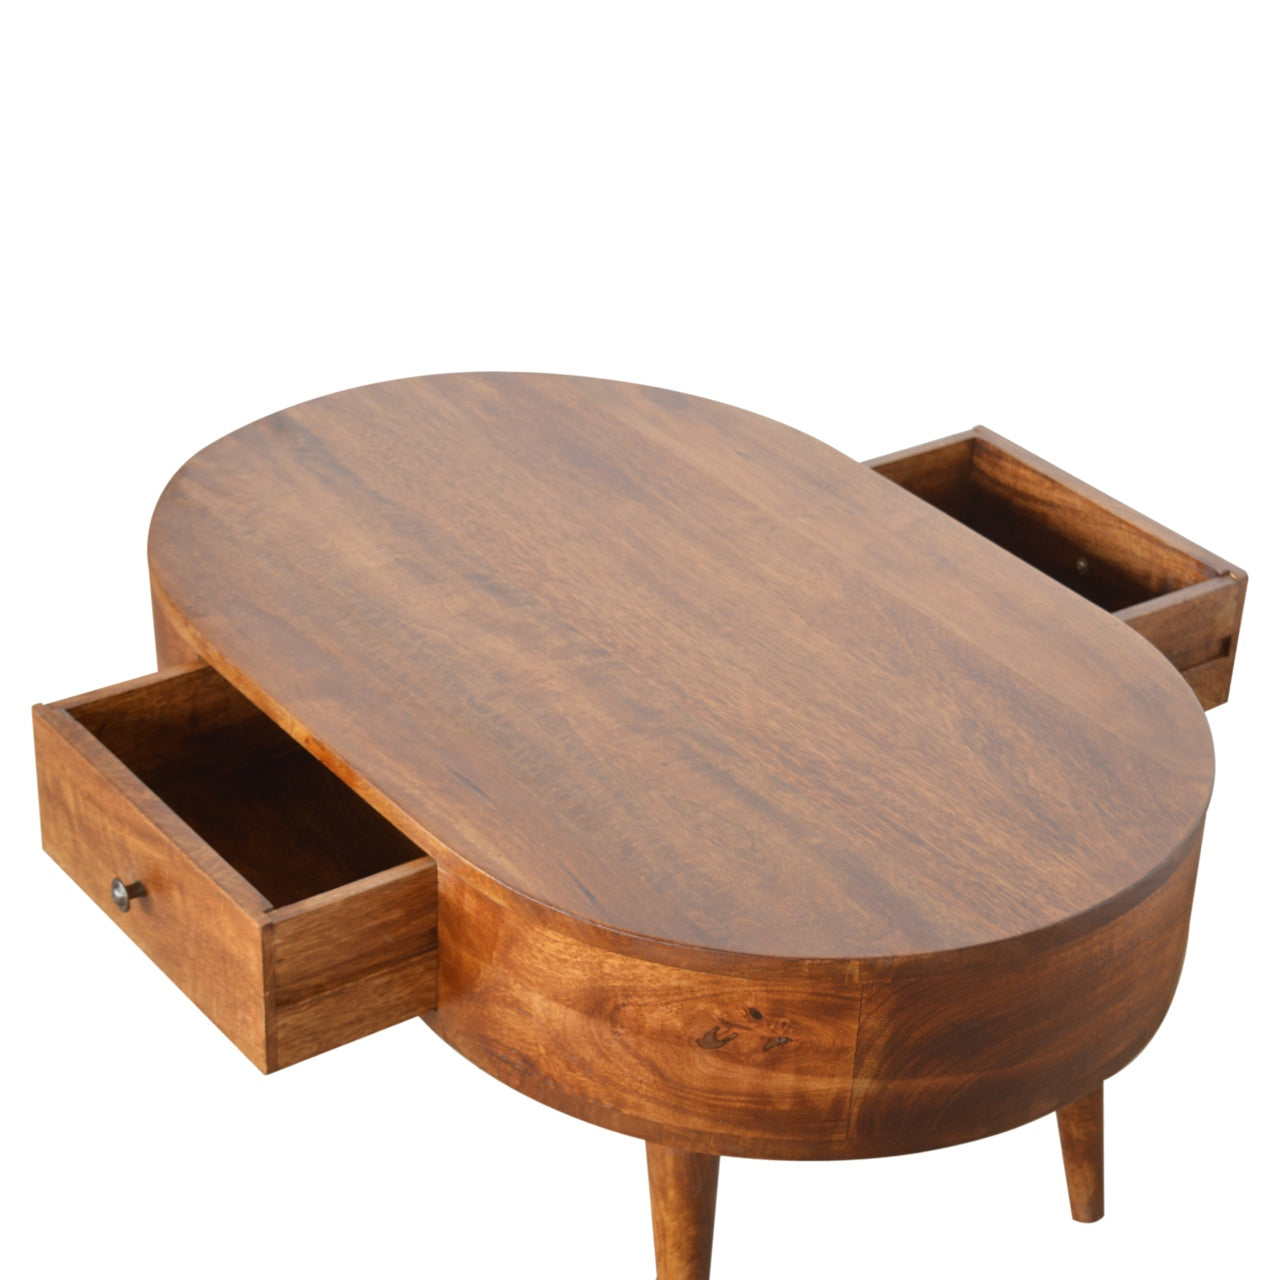 Rounded Edge Coffee Table